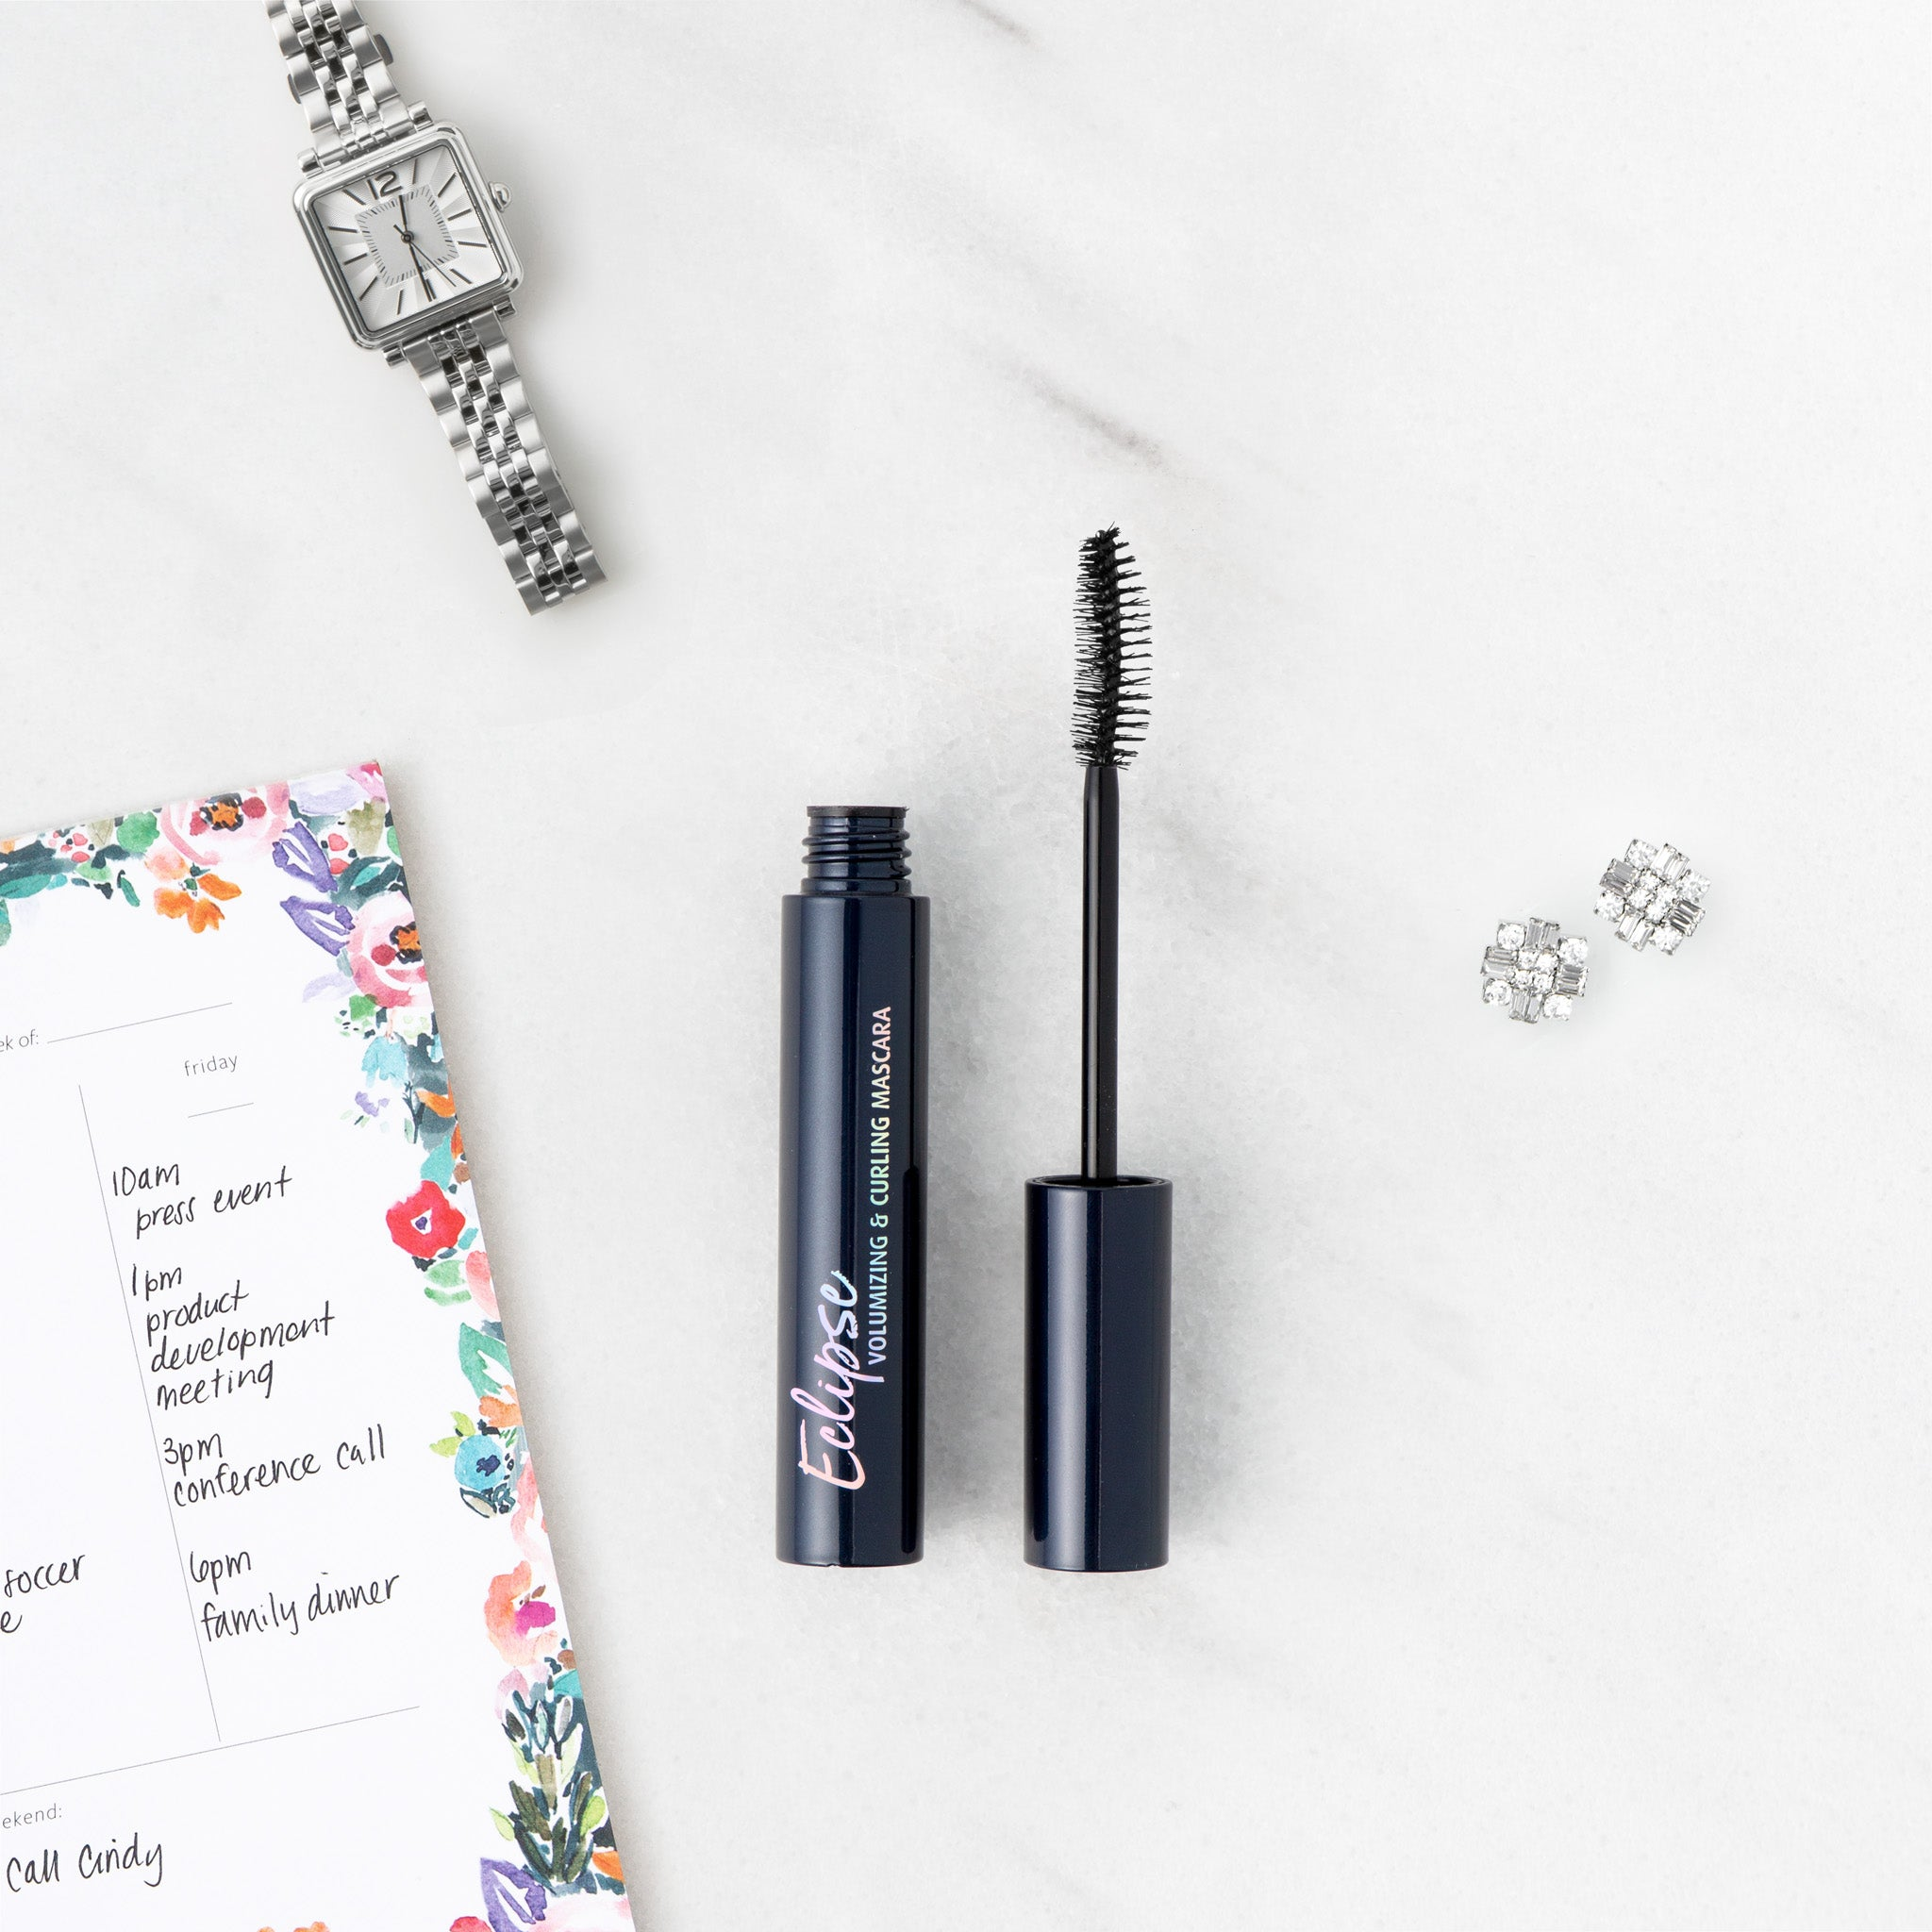 Lune+Aster Eclipse Volumizing & Curling Mascara flat lay